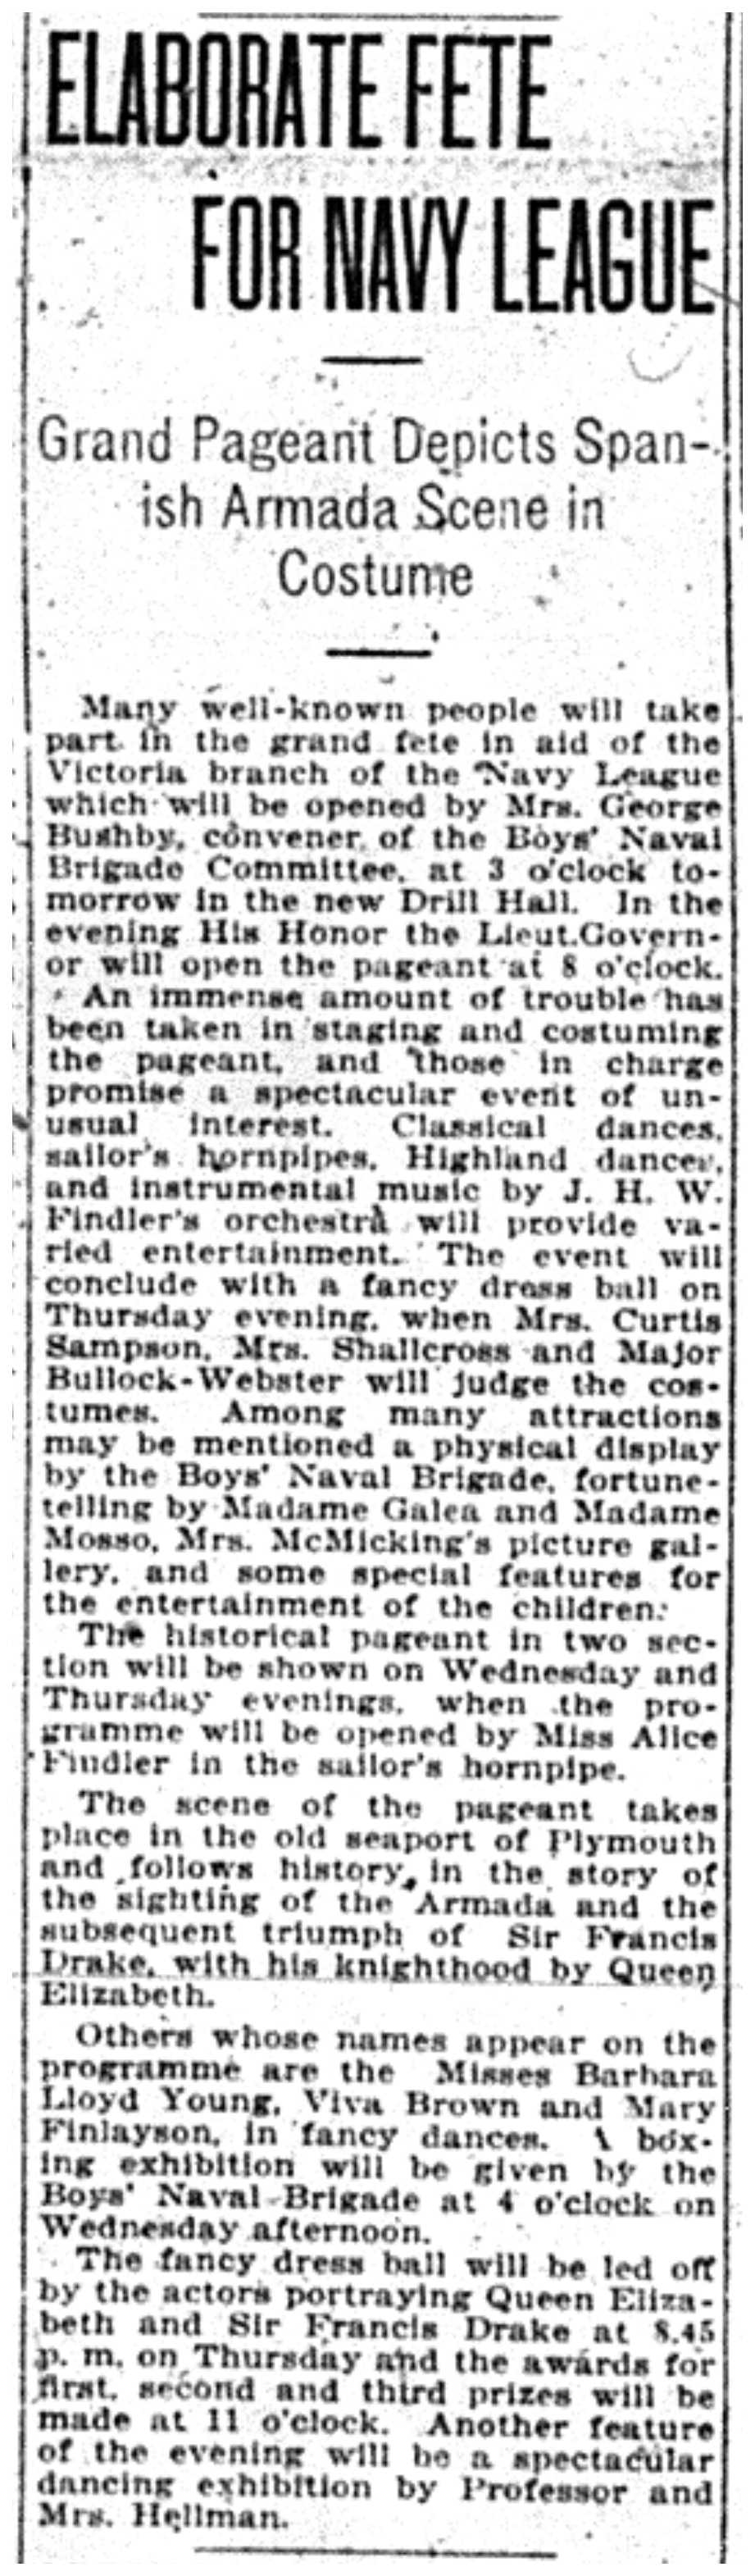 """Elaborate Fete For Navy League"""